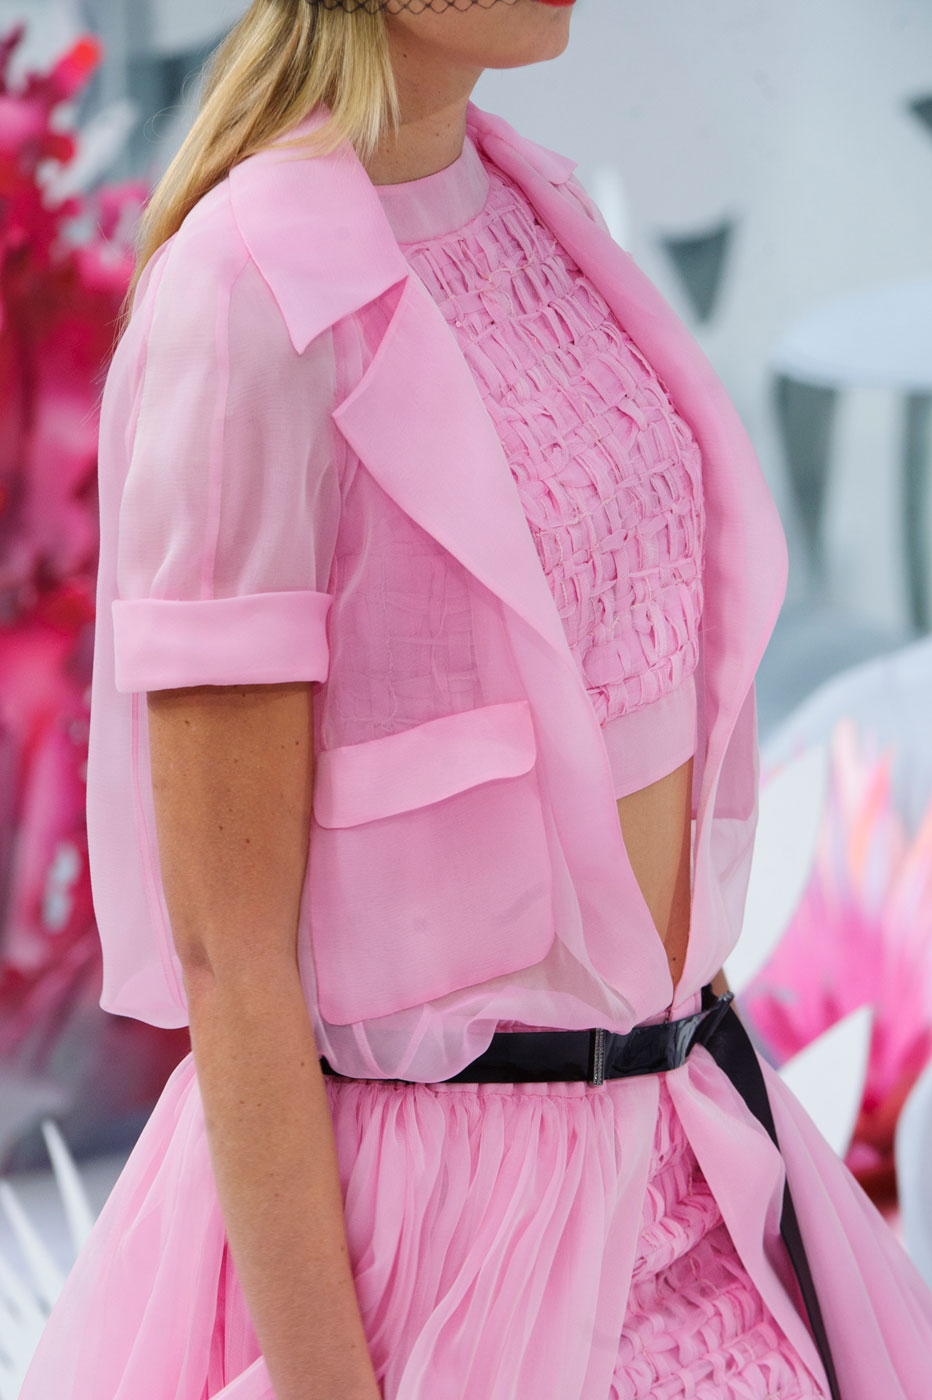 Chanel-fashion-runway-show-close-ups-haute-couture-paris-spring-summer-2015-the-impression-062